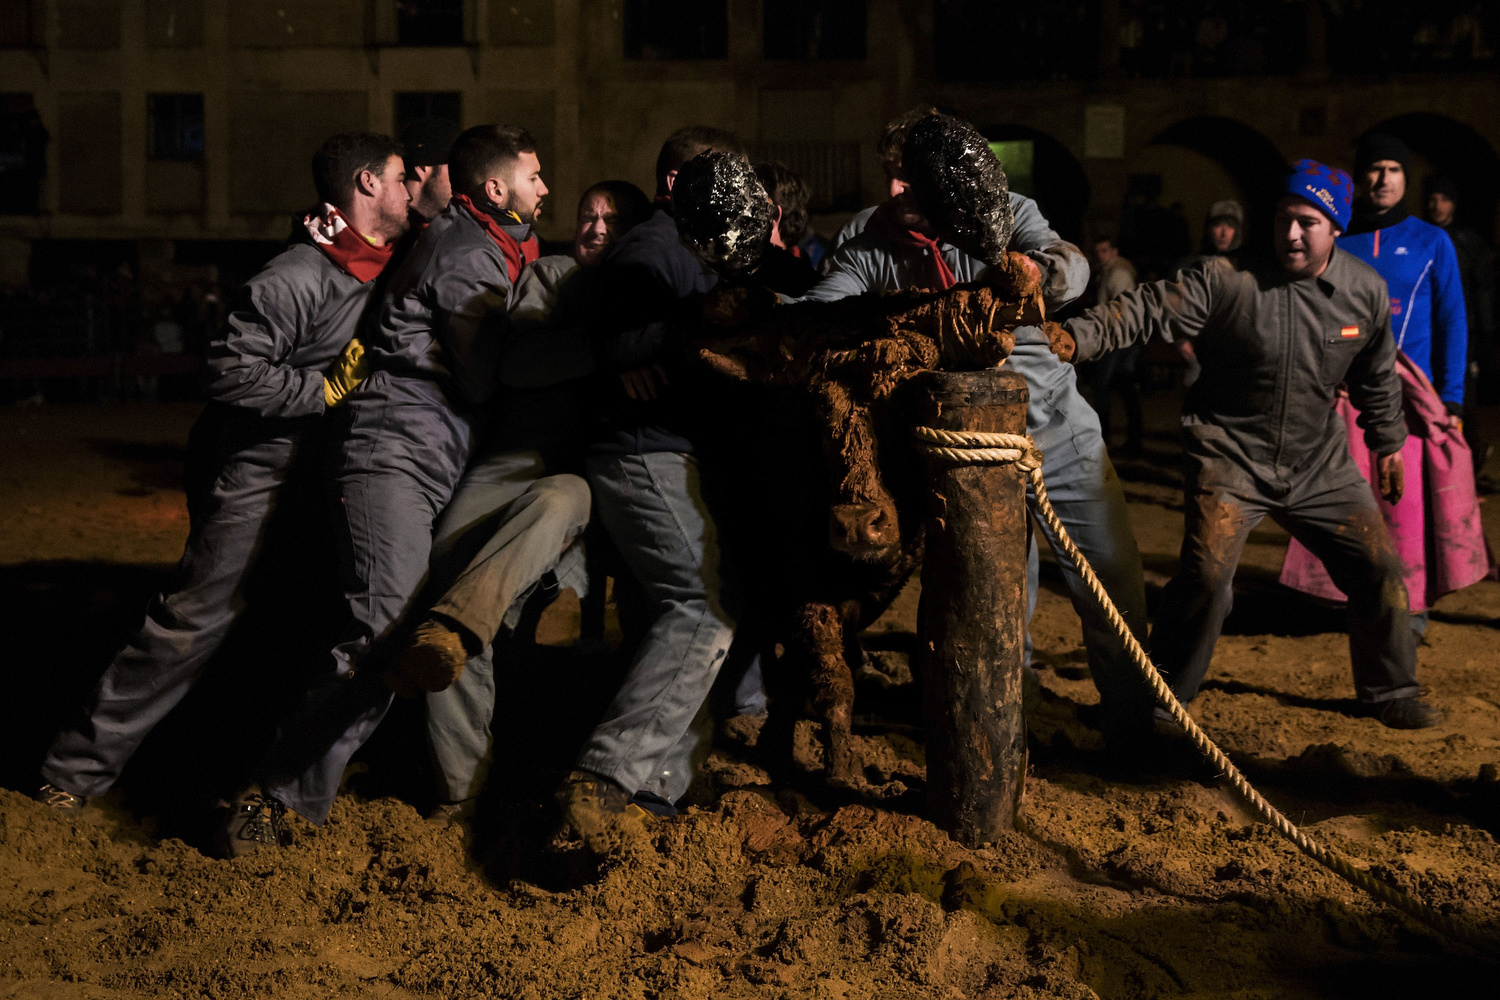 Reveller s  tie  a  bull  to a  stick  in order to set  fire  to the  flammable  balls attached to its  horns  during the ' Toro de Jubilo ' fire bull festival on November 16, 2014 in  Medinaceli , Spain.  Toro de Jubilo , a  Fire Bull festival , is an ancient tradition held annually at midnight in the Spanish town of Medinaceli. The event starts when flammable balls attached to a bull,s horns are set alight. The  animal  is then untied and revellers dodge it until the flammable material is consumed. The body of the animal is covered with mud to protect it from burns.